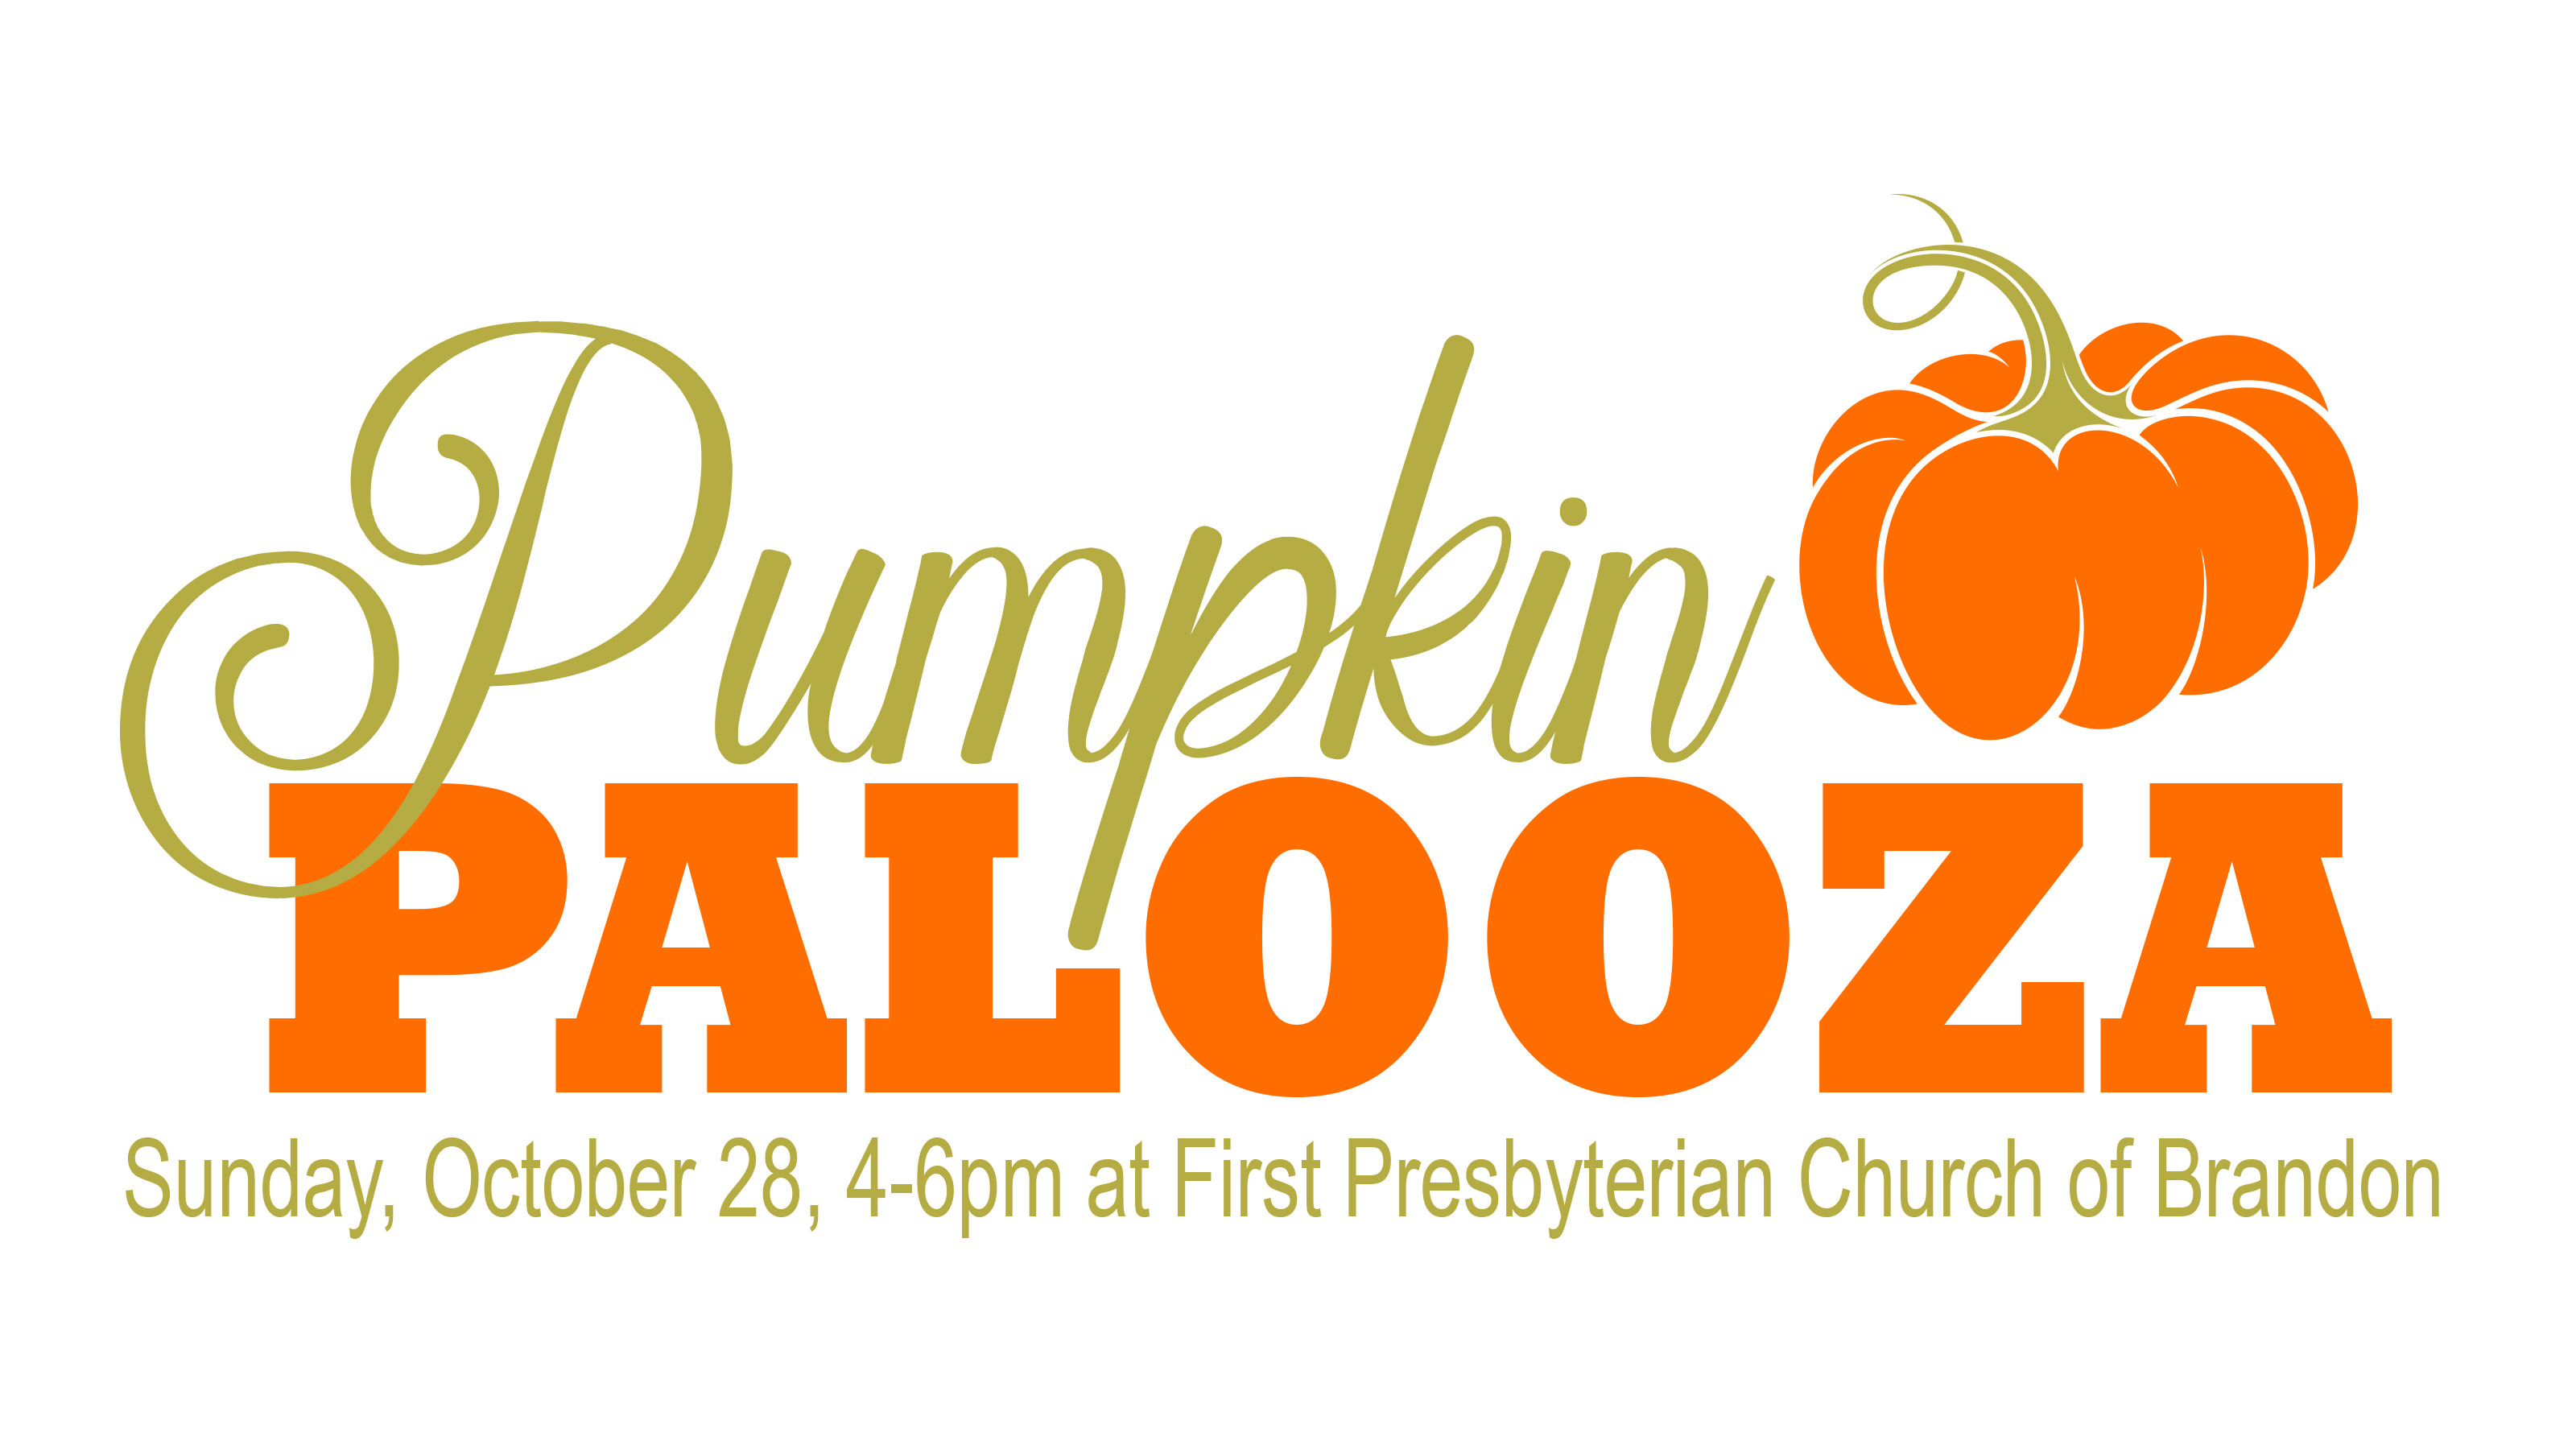 First Presbyterian Church of Brandon Pumpkin Palooza, Pumkin Pie Contest, Trunk or Treat, Carnival Games, Fun for the whole family in Brandon Florida